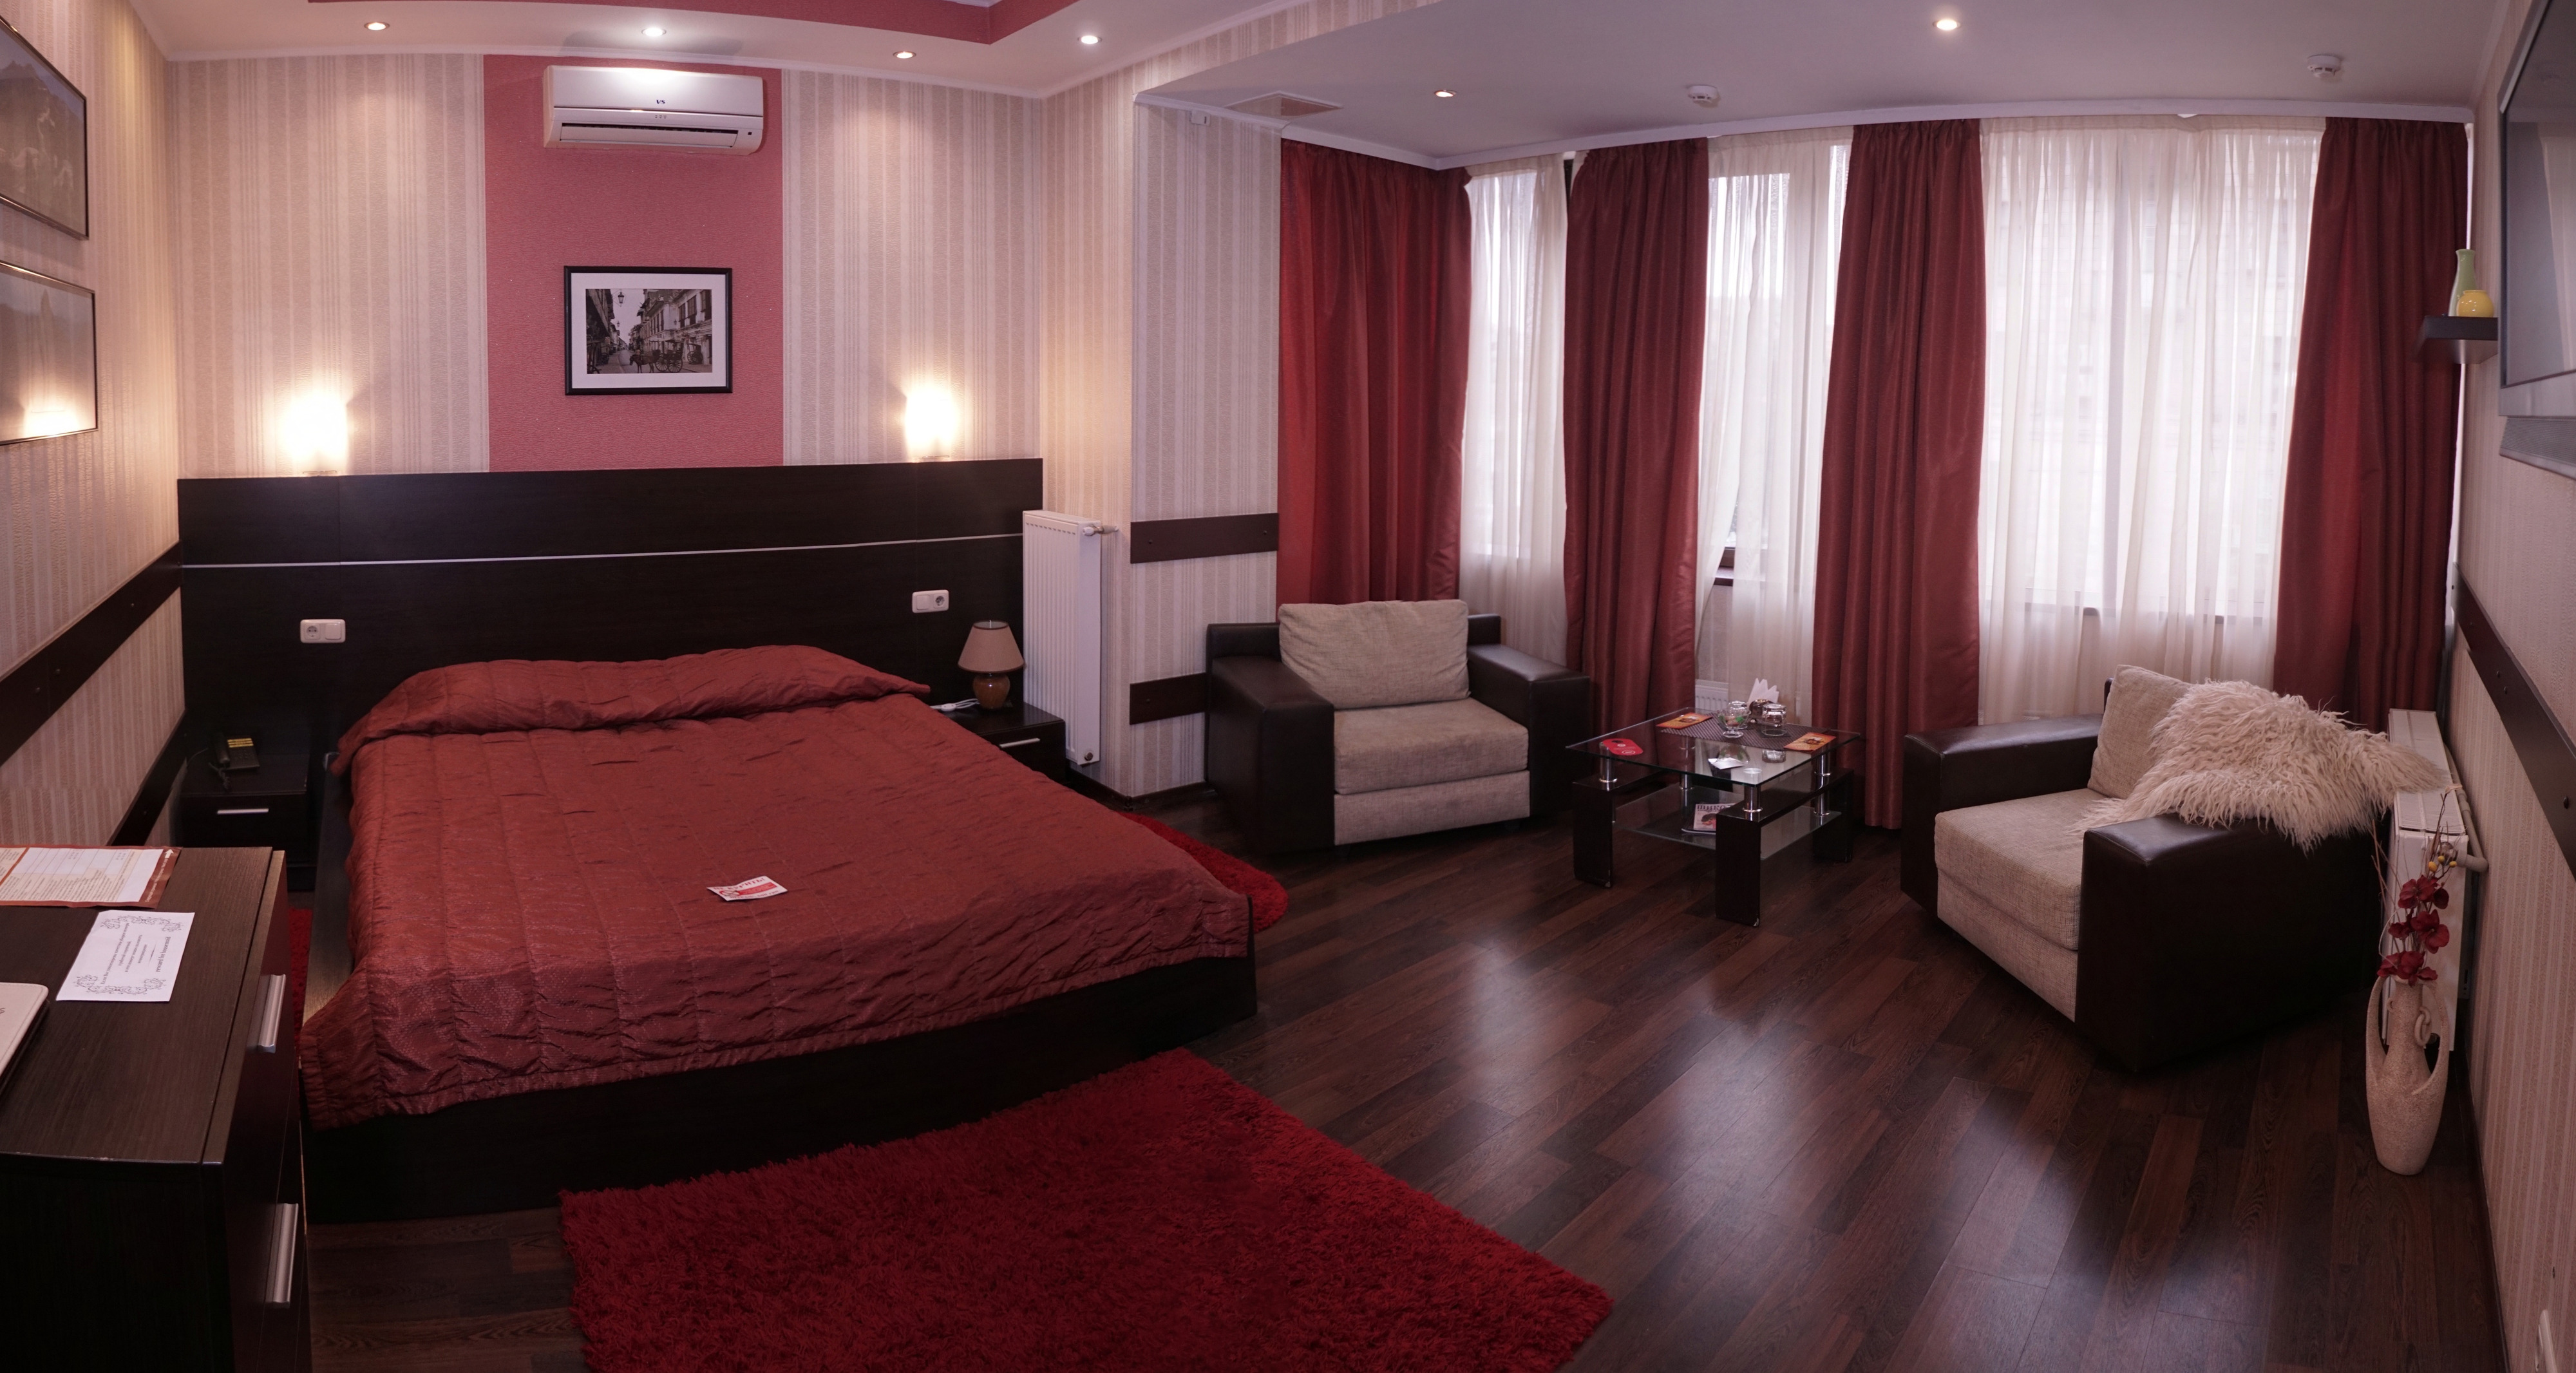 Double Room at Viva Hotel